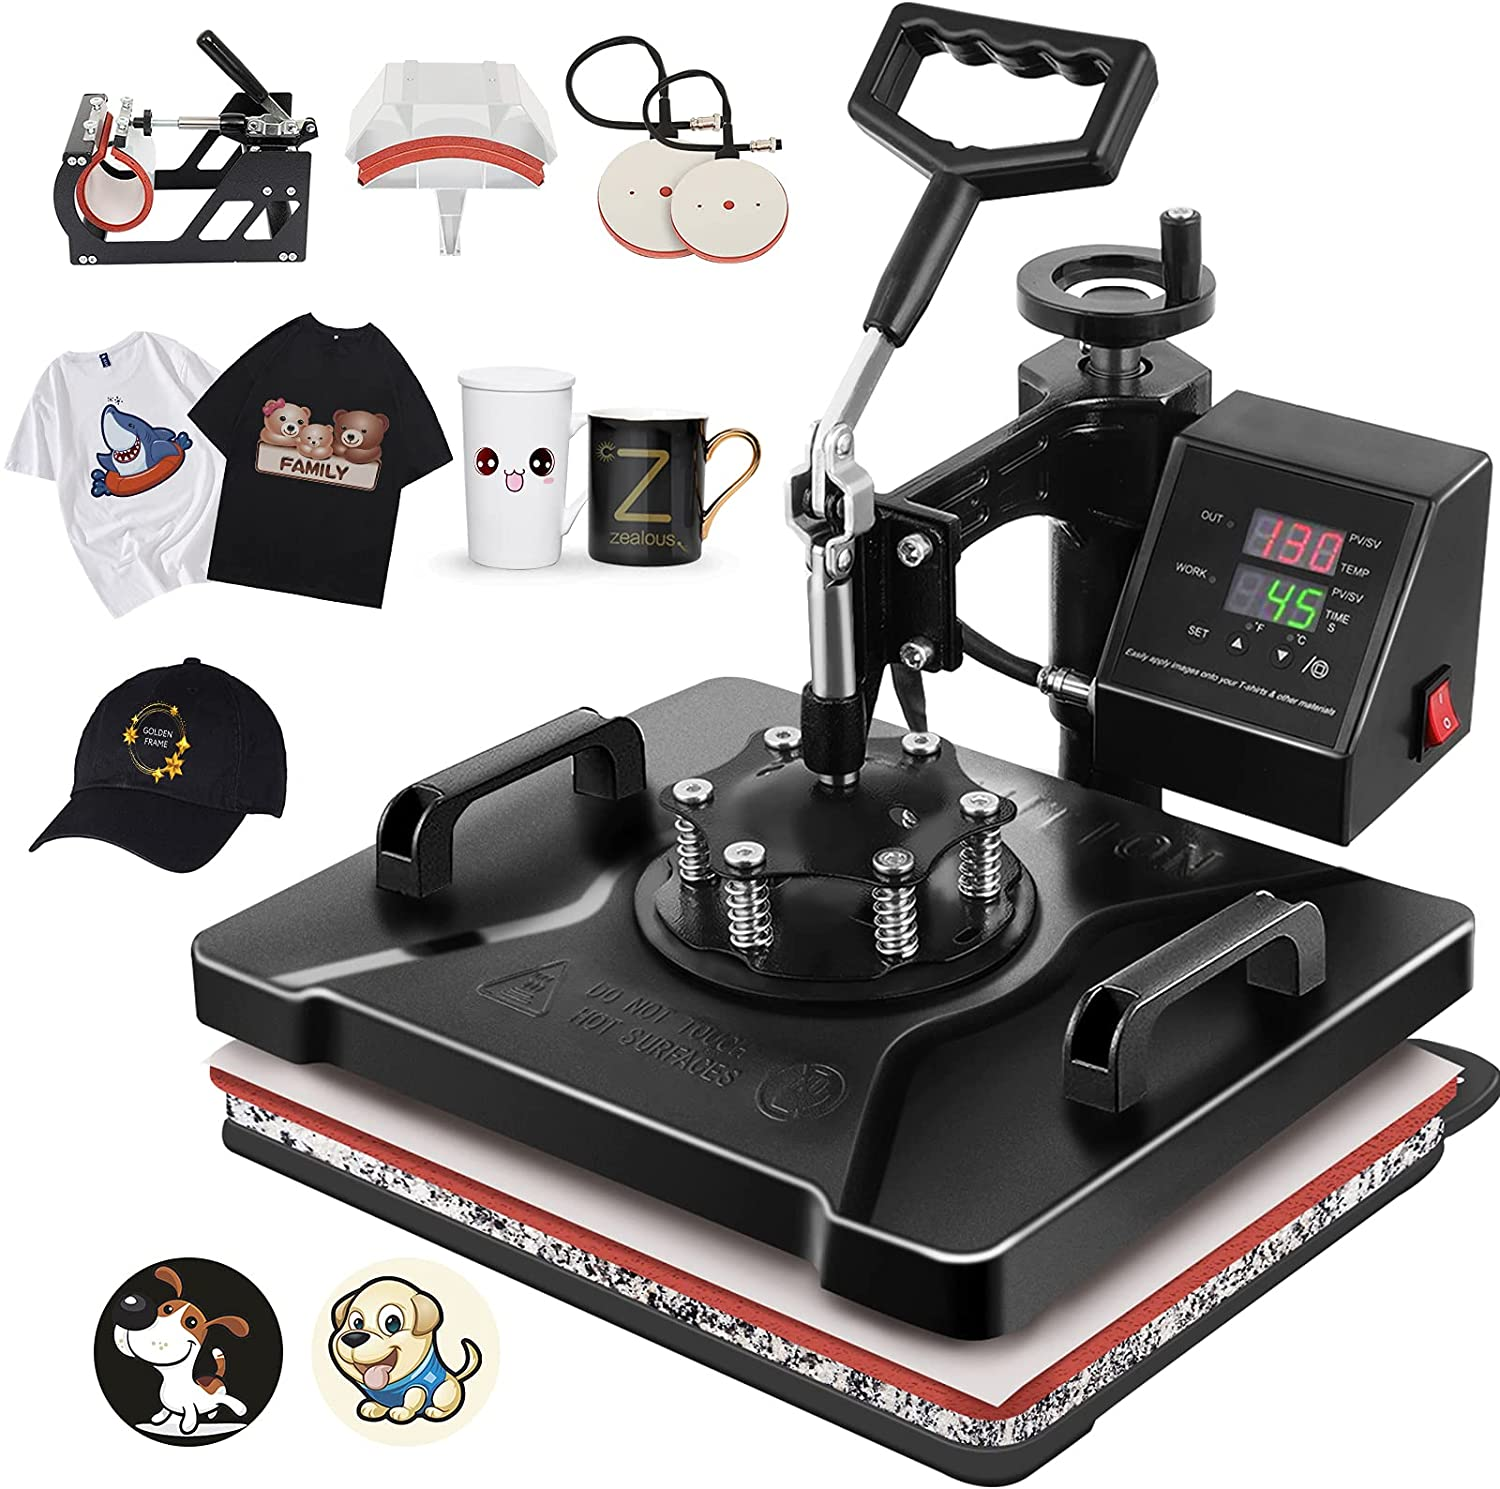 Tolsous 12 X15 5 in 1 Heat Machine Press Degree Swivel 360 Multi At the price of surprise Max 56% OFF